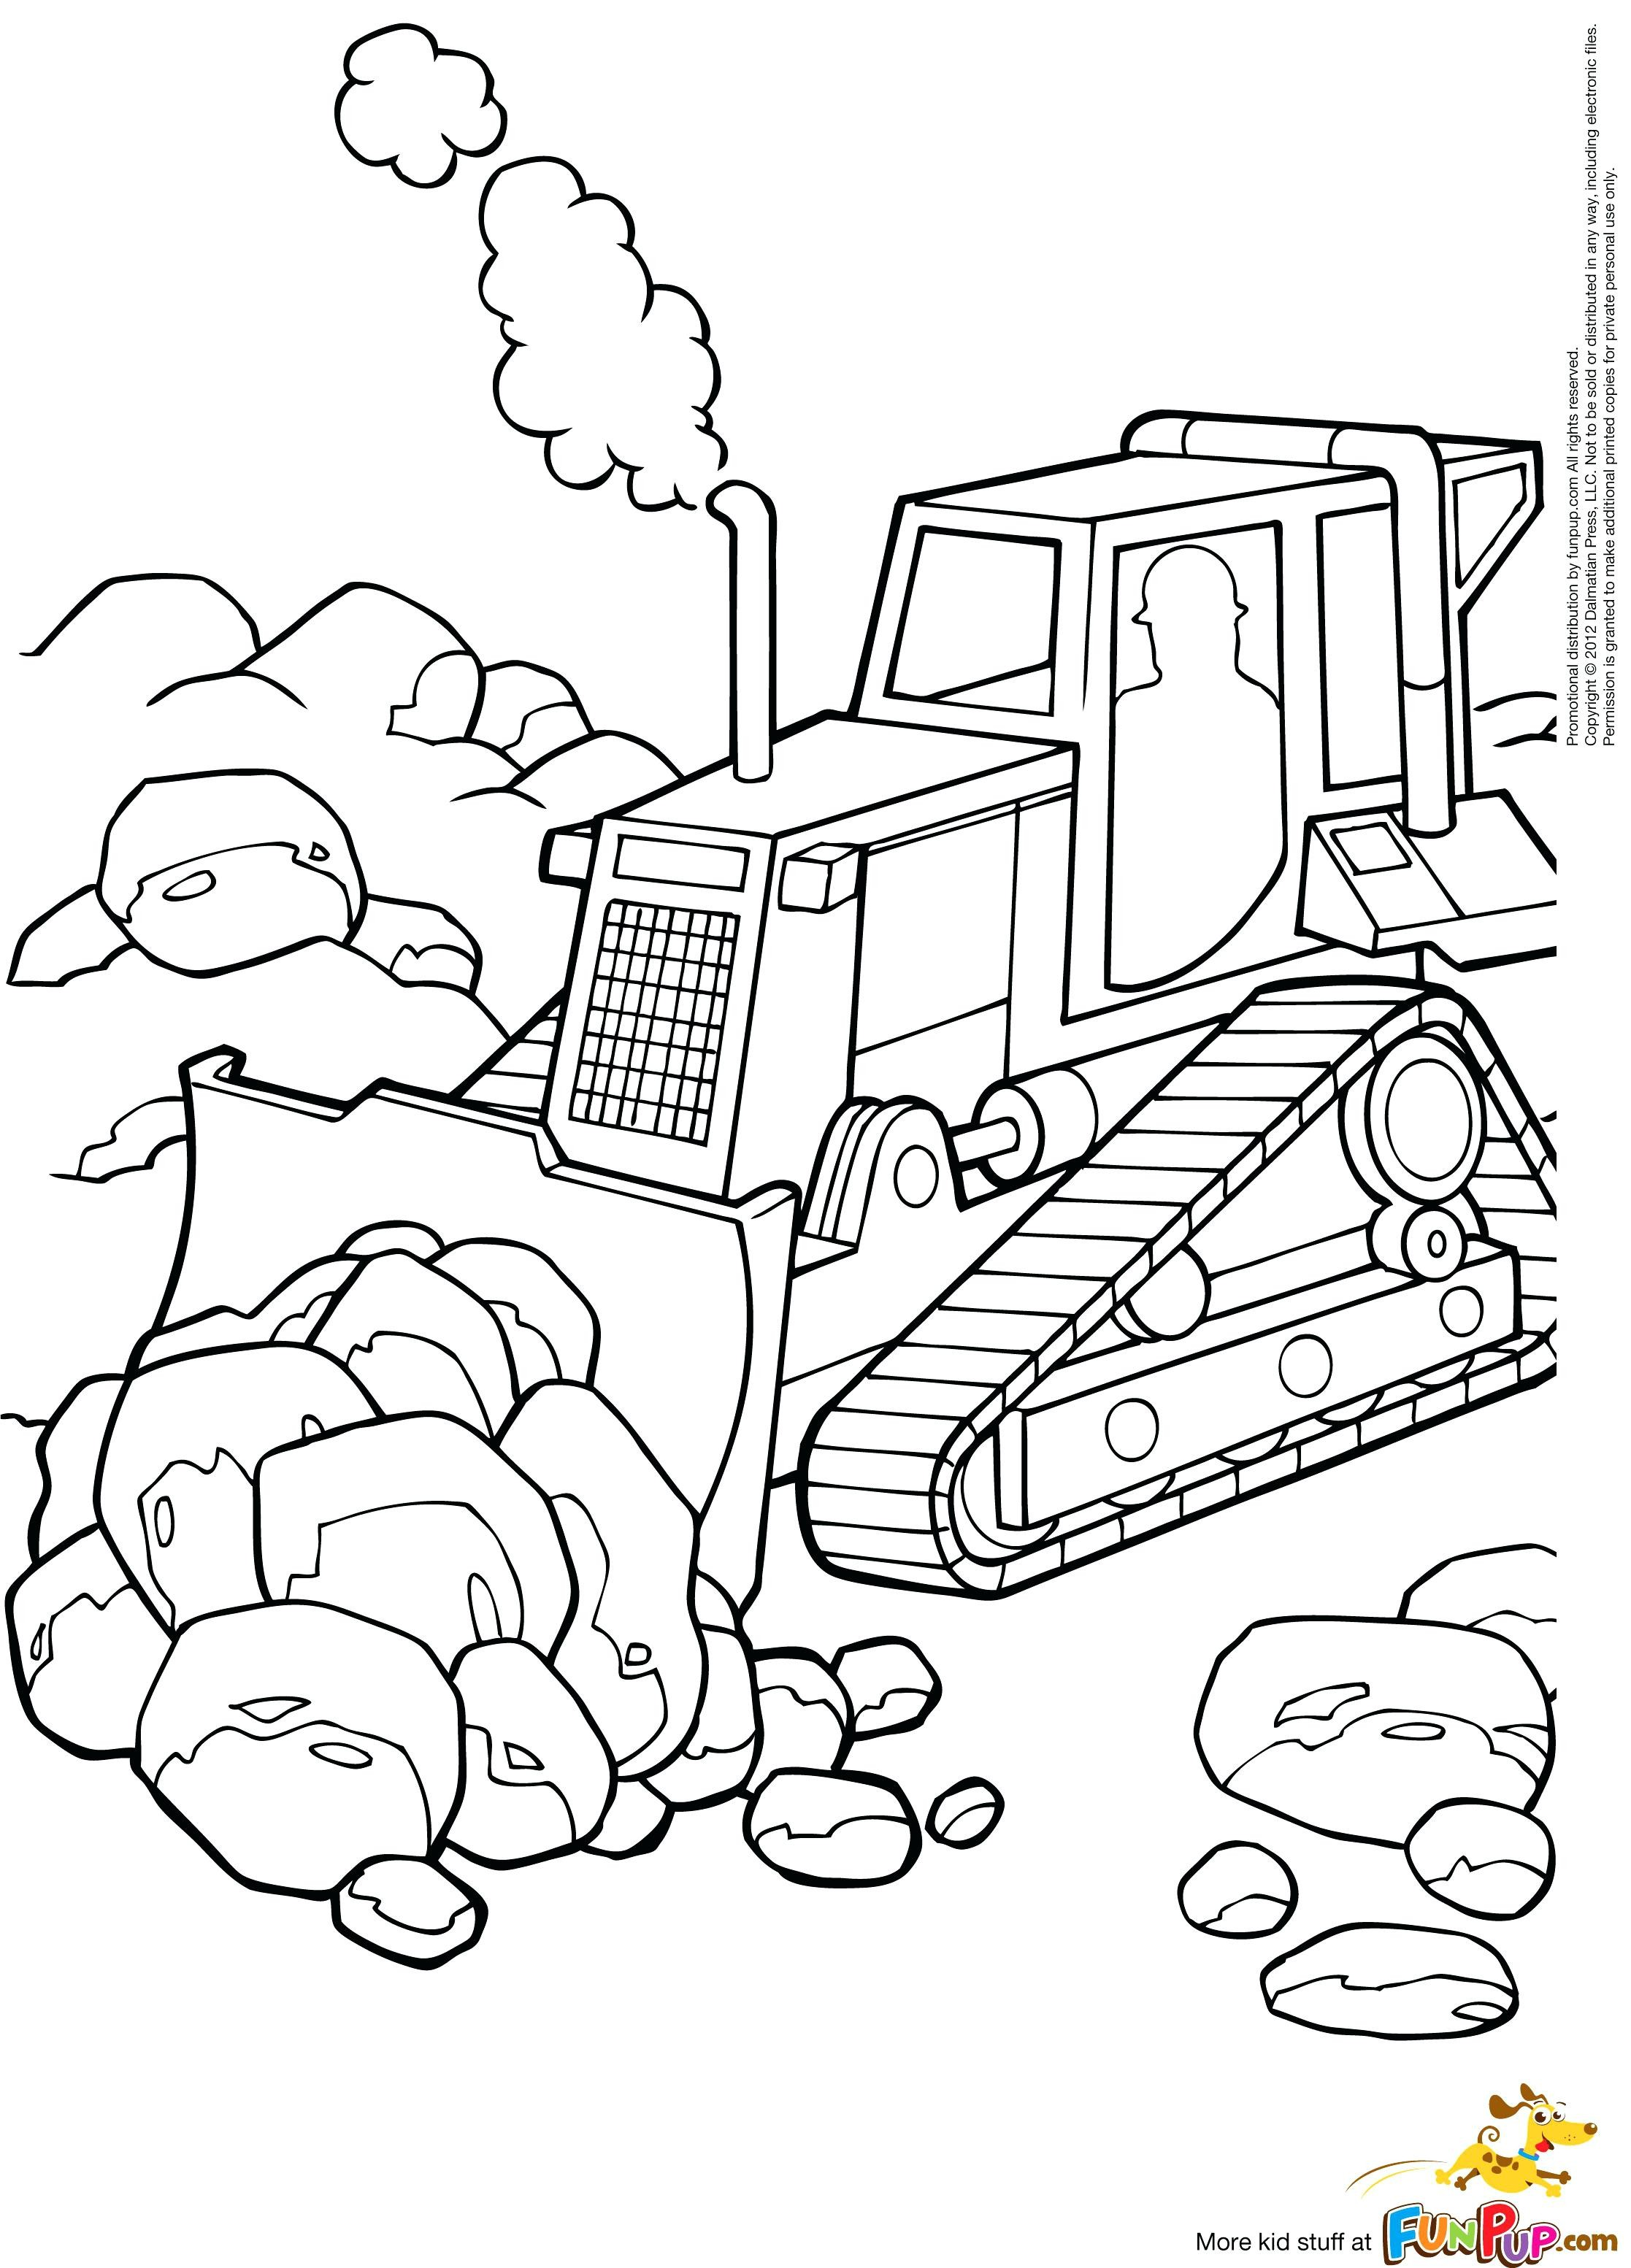 Construction Equipment Drawing at GetDrawings | Free download